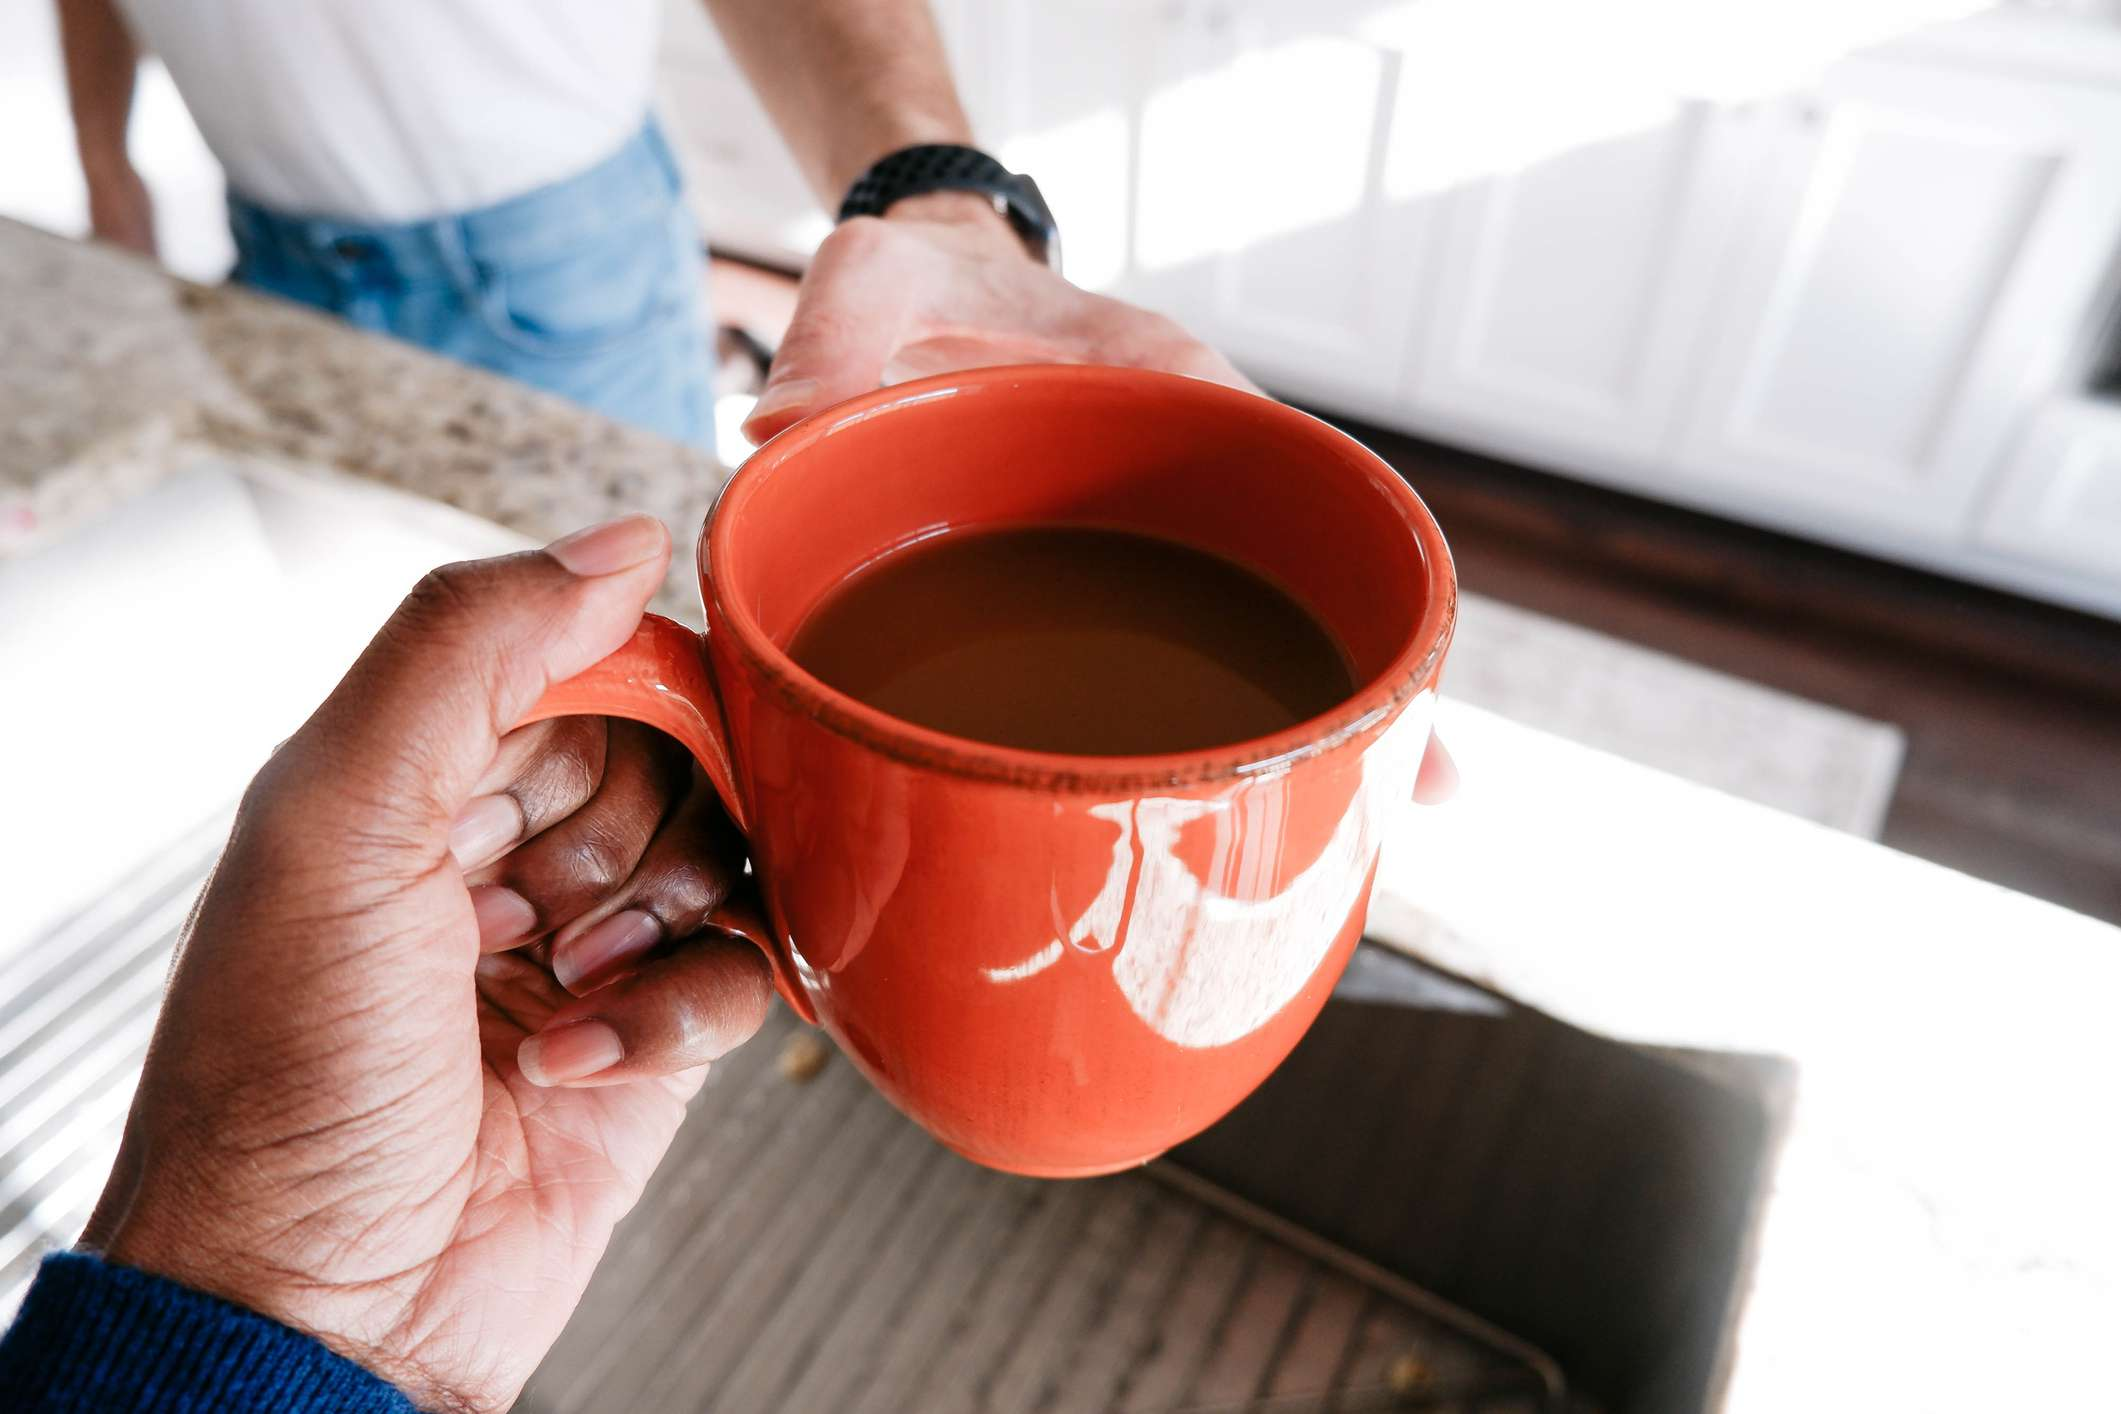 A man hands another man a cup of coffee.